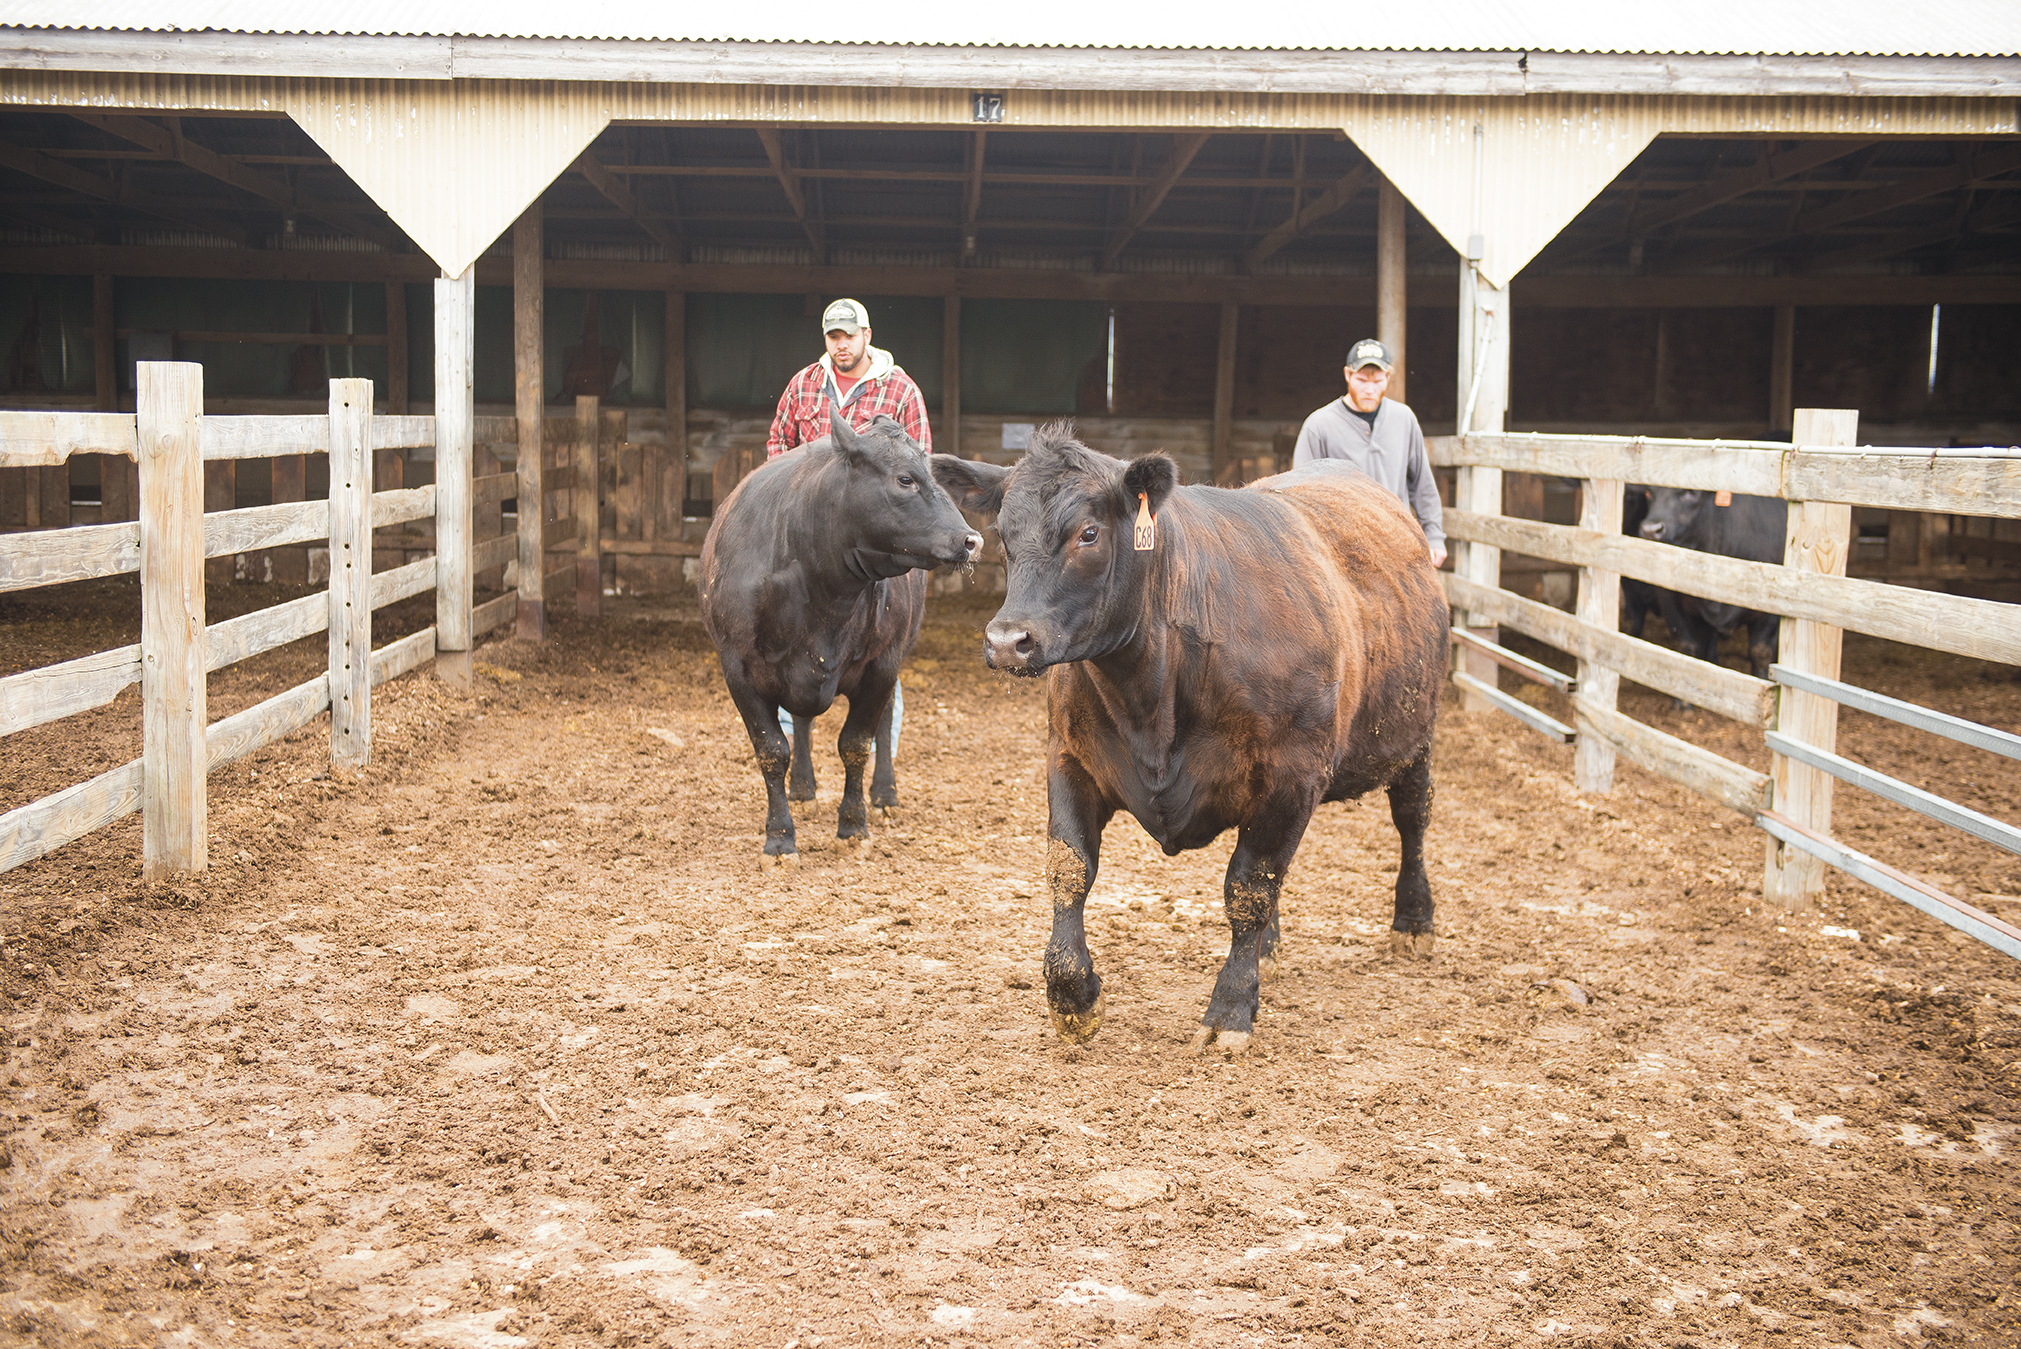 Brett Crite '16, then an undergraduate student and farm employee, and Parmenter usher cattle into a chute through which they were directed to a scale.